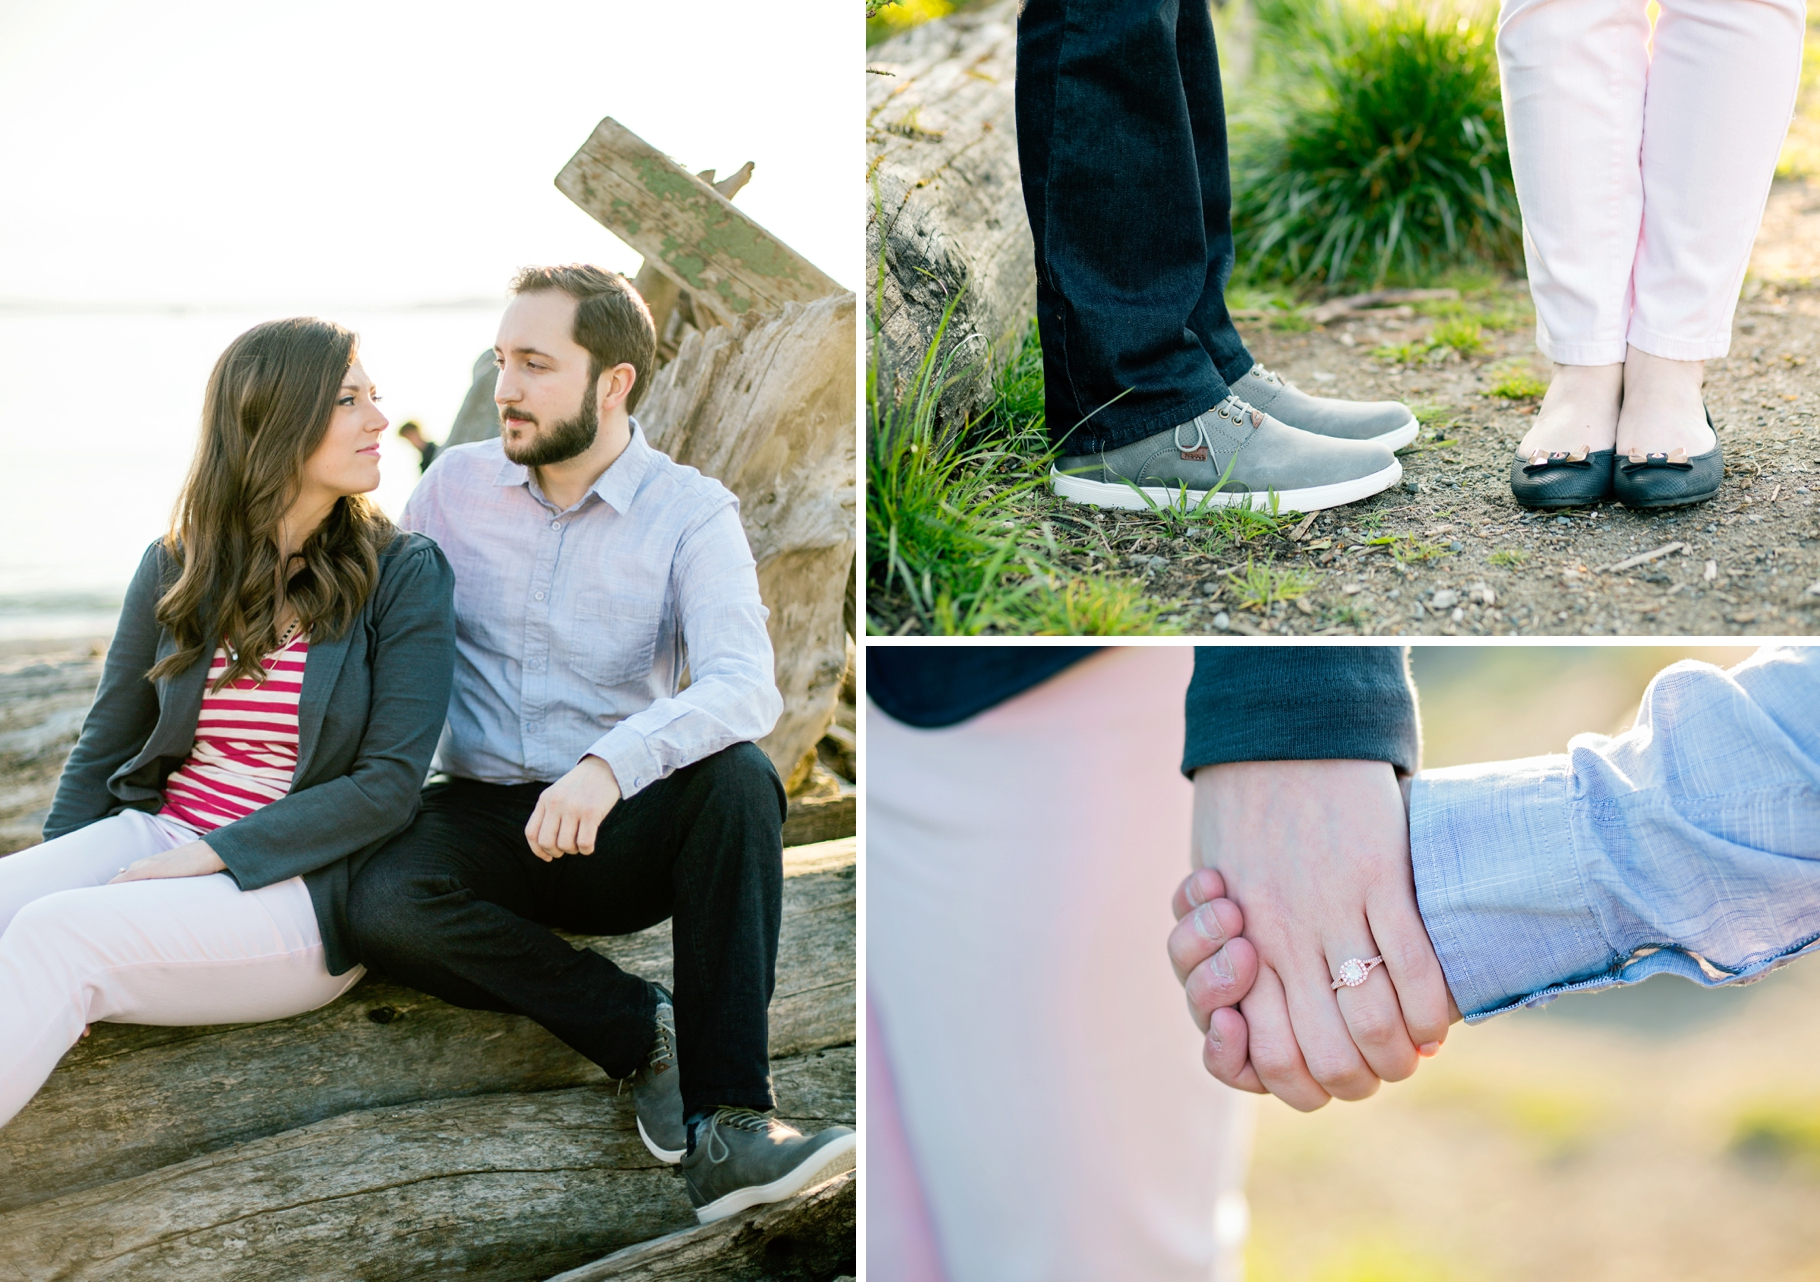 8-Pacfic-Northwest-Engaged-Seattle-Waterfront-Myrtle-Edwards-Park-Romantic-Ocean-Sunset-Driftwood-Beach-Enagement-Ring-Outfit-Details-Photographer-Wedding-Photography-by-Betty-Elaine